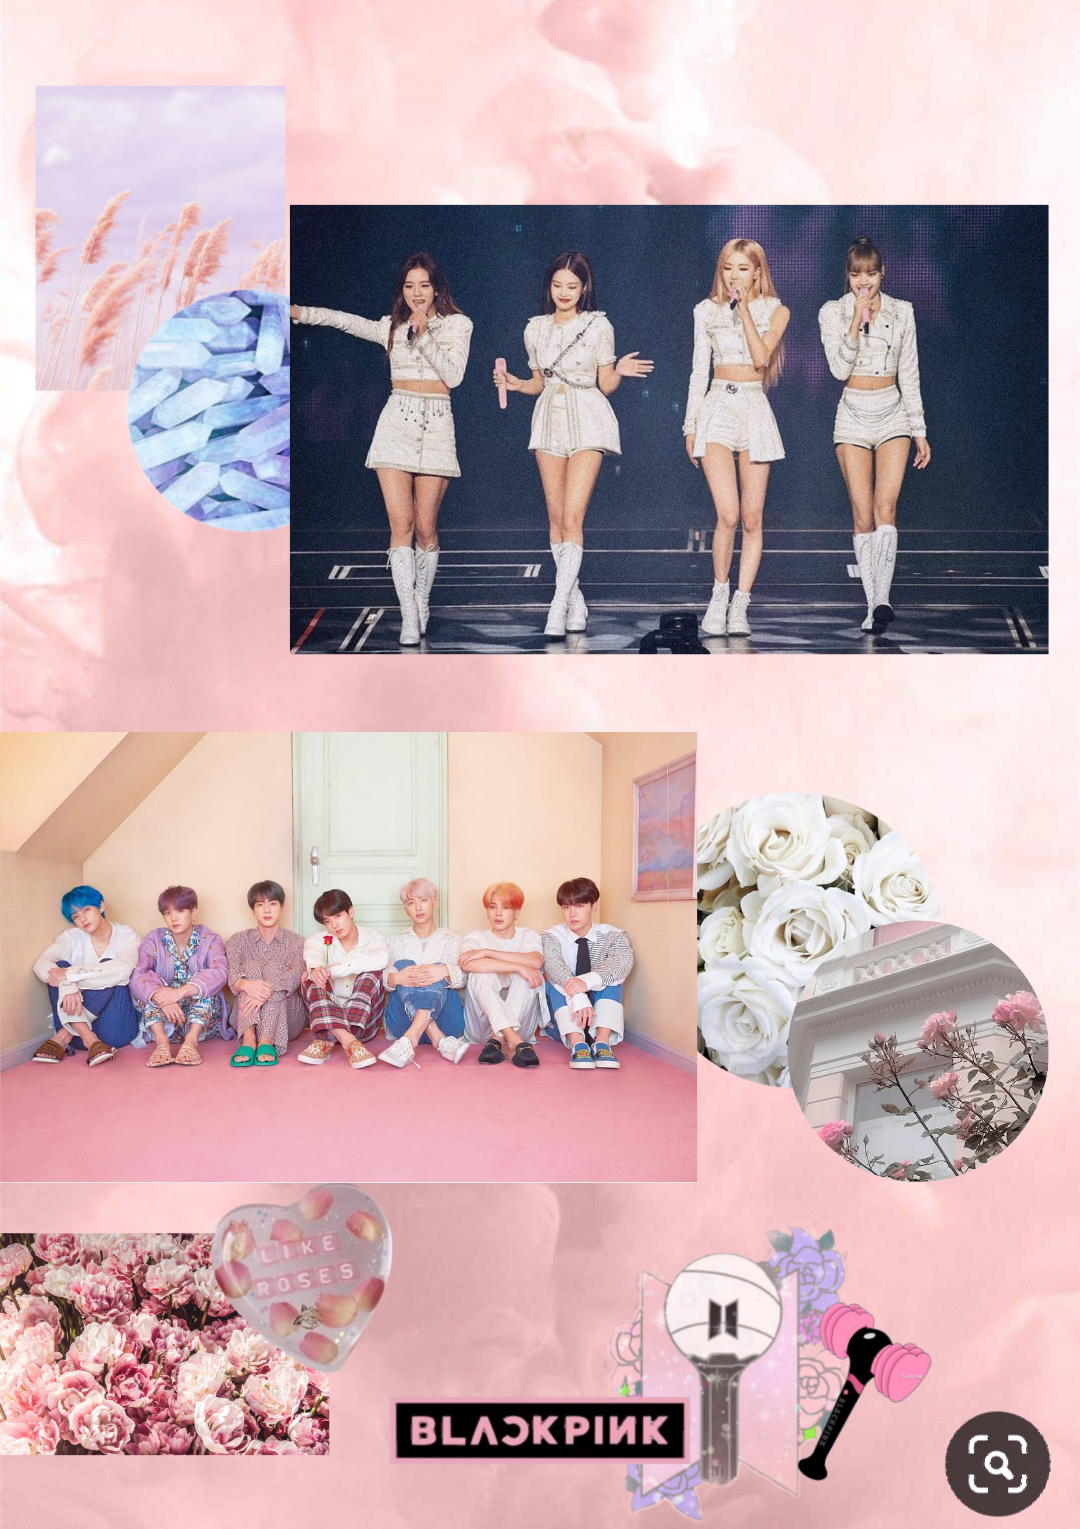 24 blackpink and BTS ideas in 2021 blackpink and bts 1080x1529